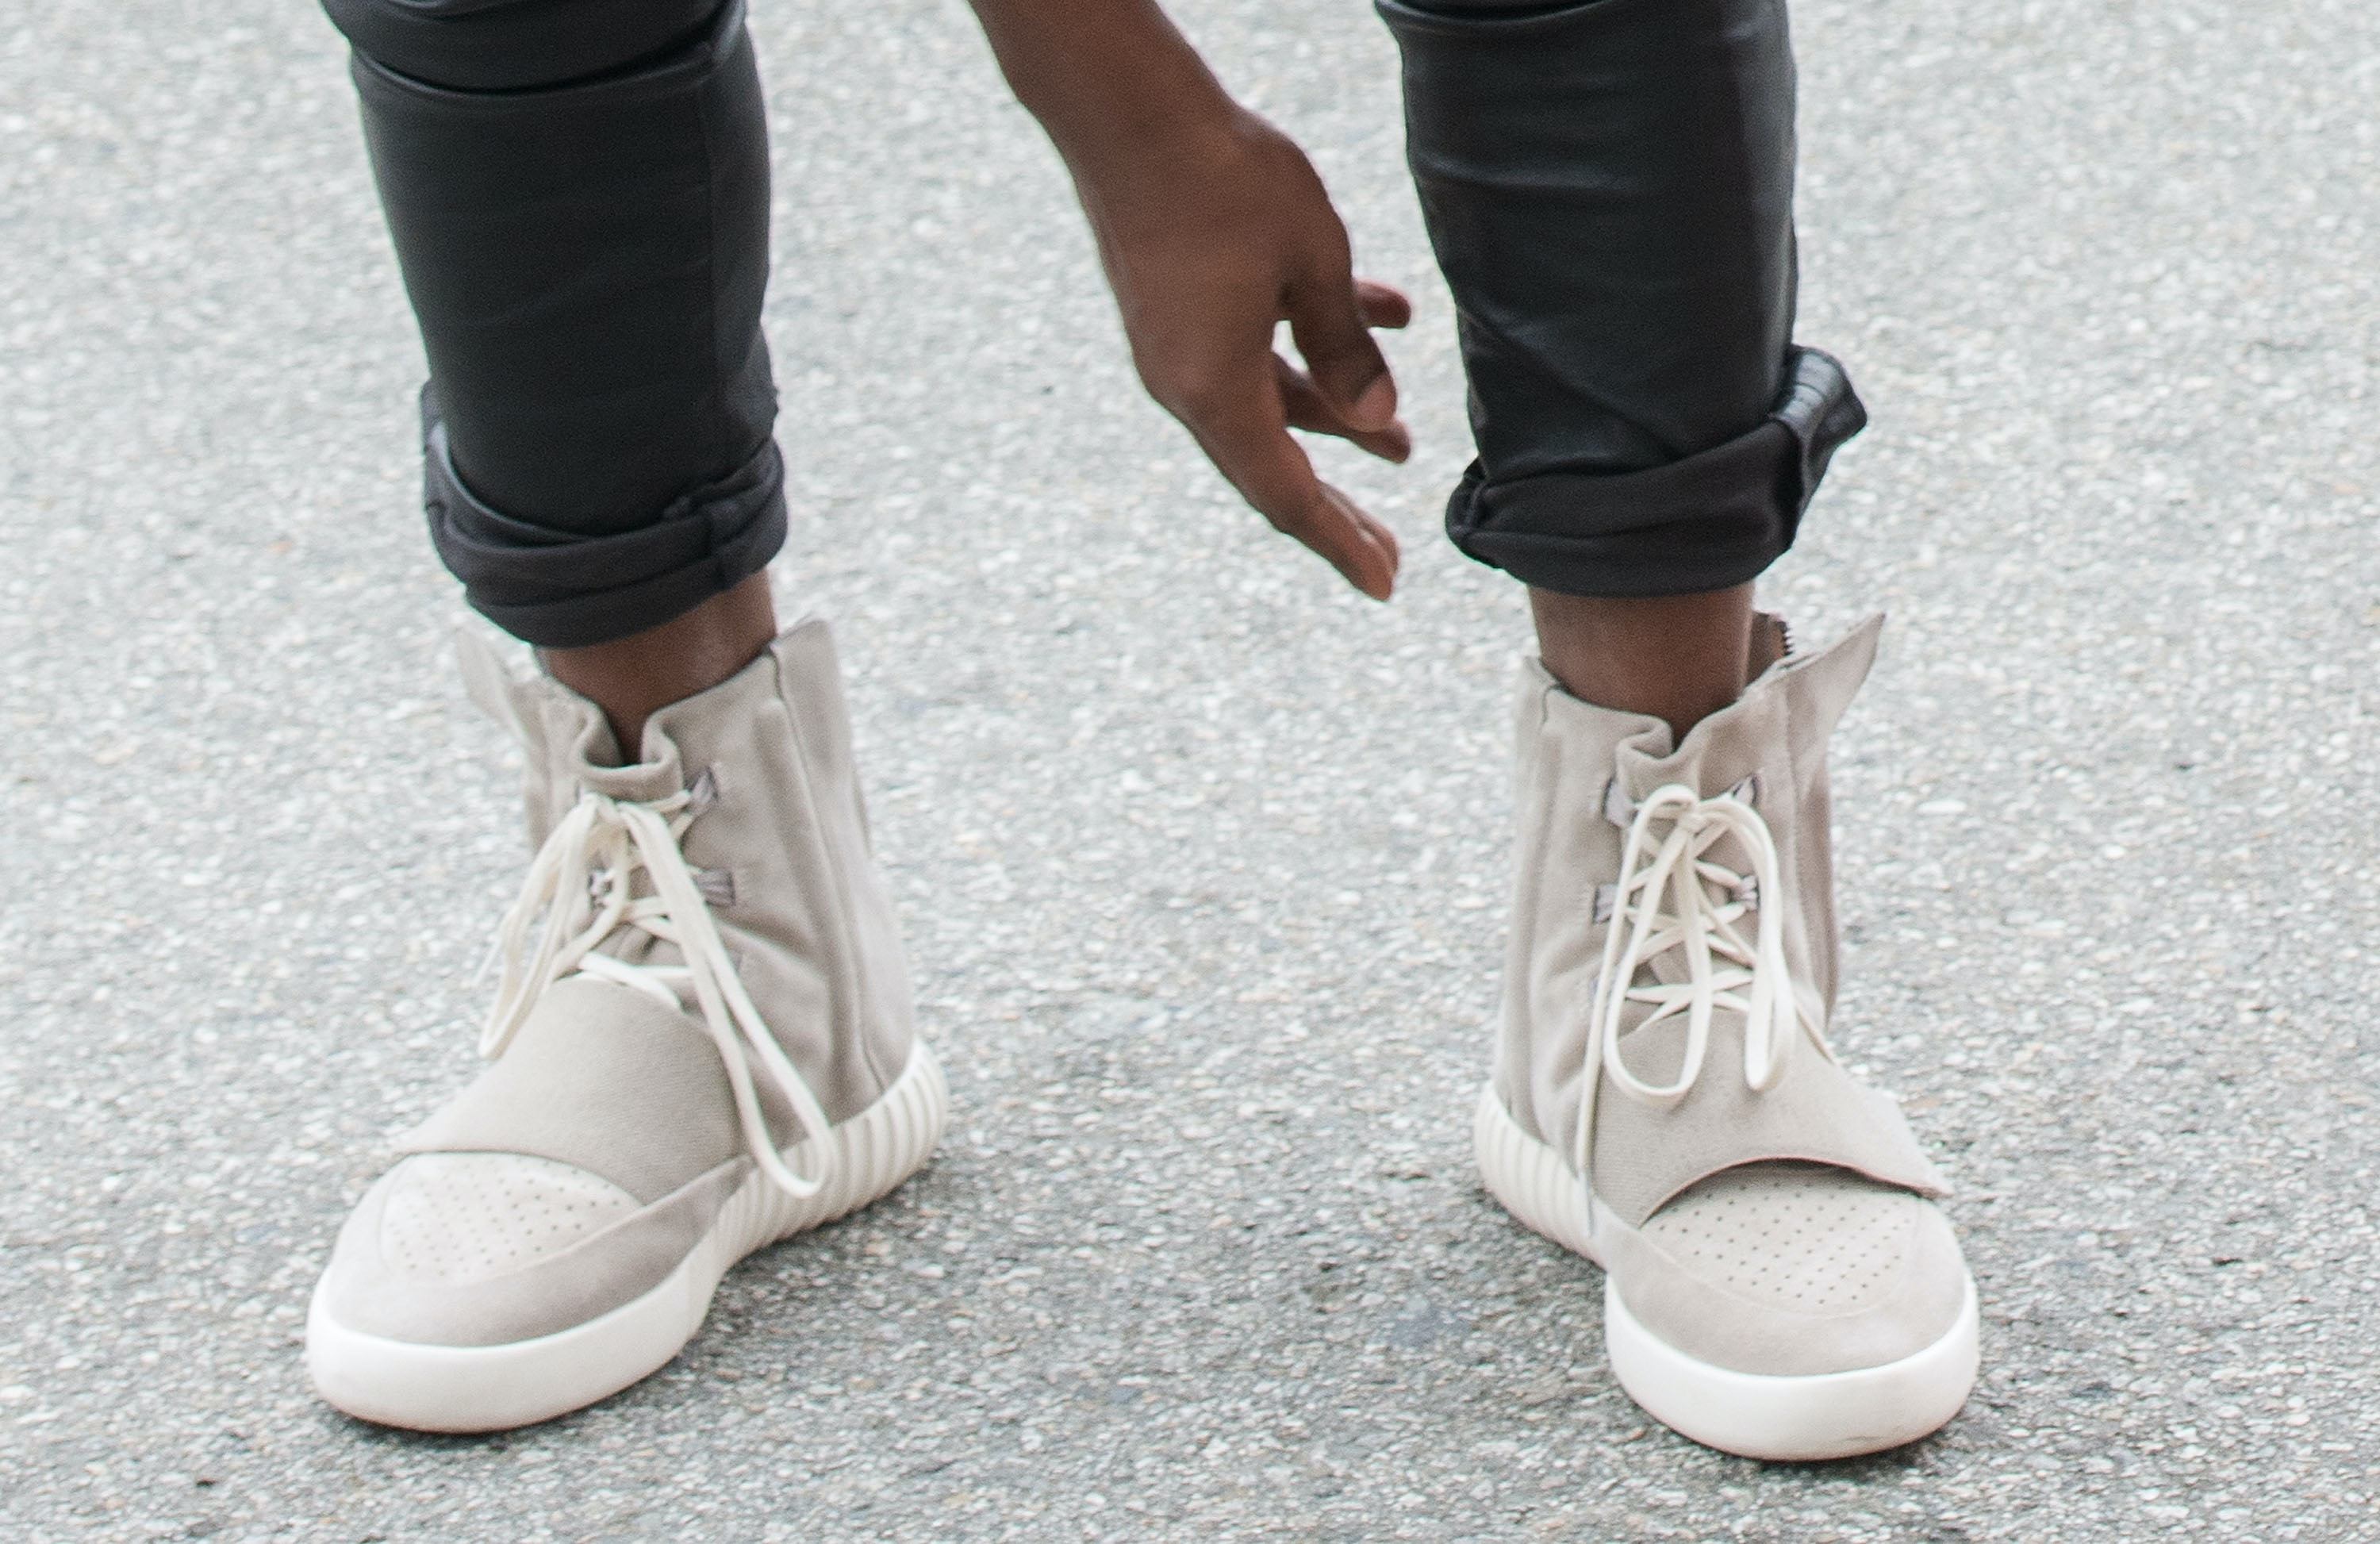 406247377c4ca Kim Kardashian Teases New Yeezy 750s   You re Going To Want Them So Badly —  VIDEO